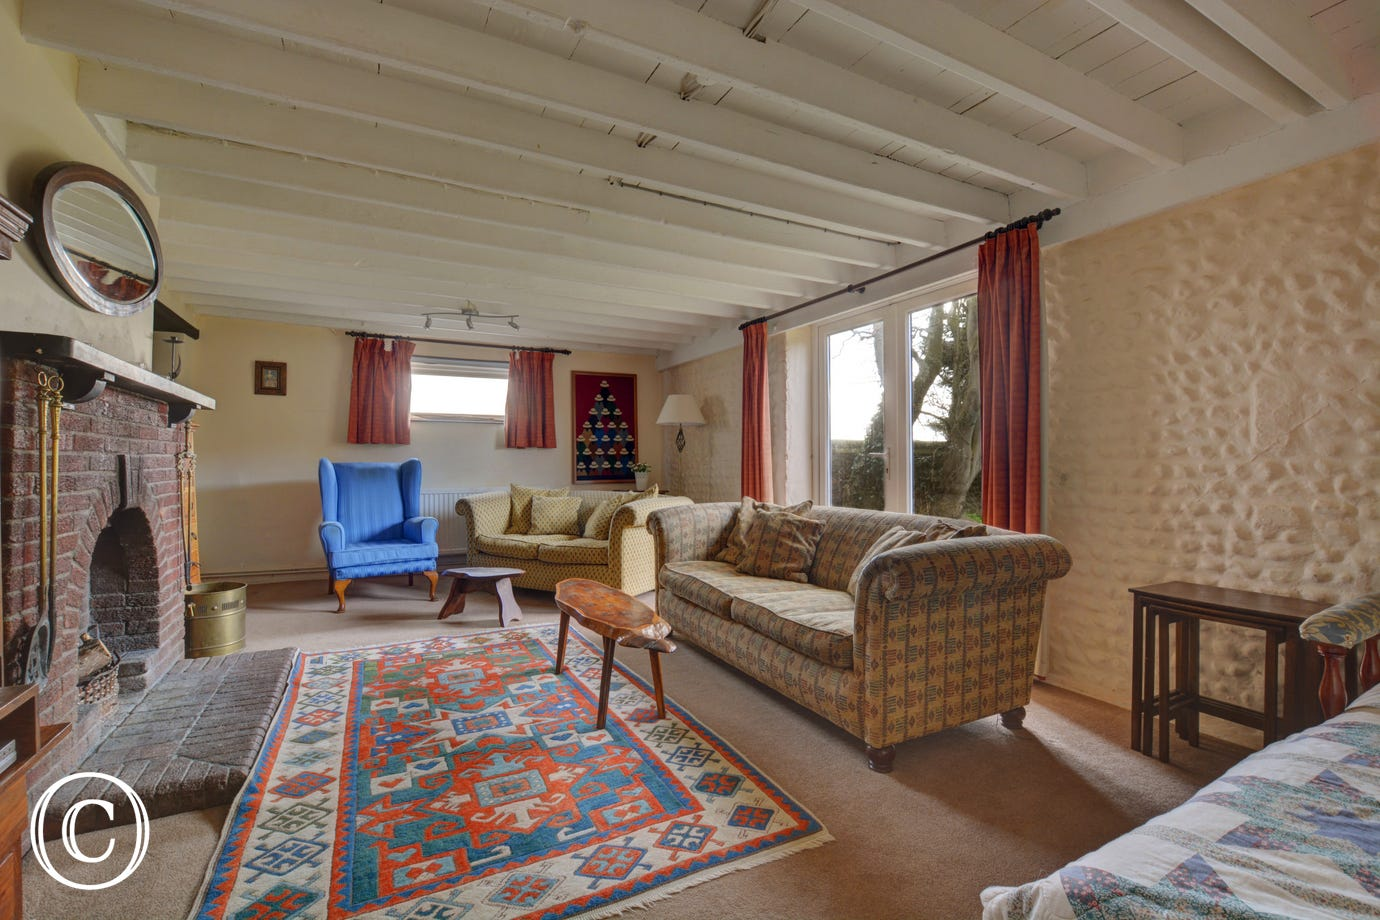 The sitting room is spacious and has large comfy sofas,  plenty of room for all the family